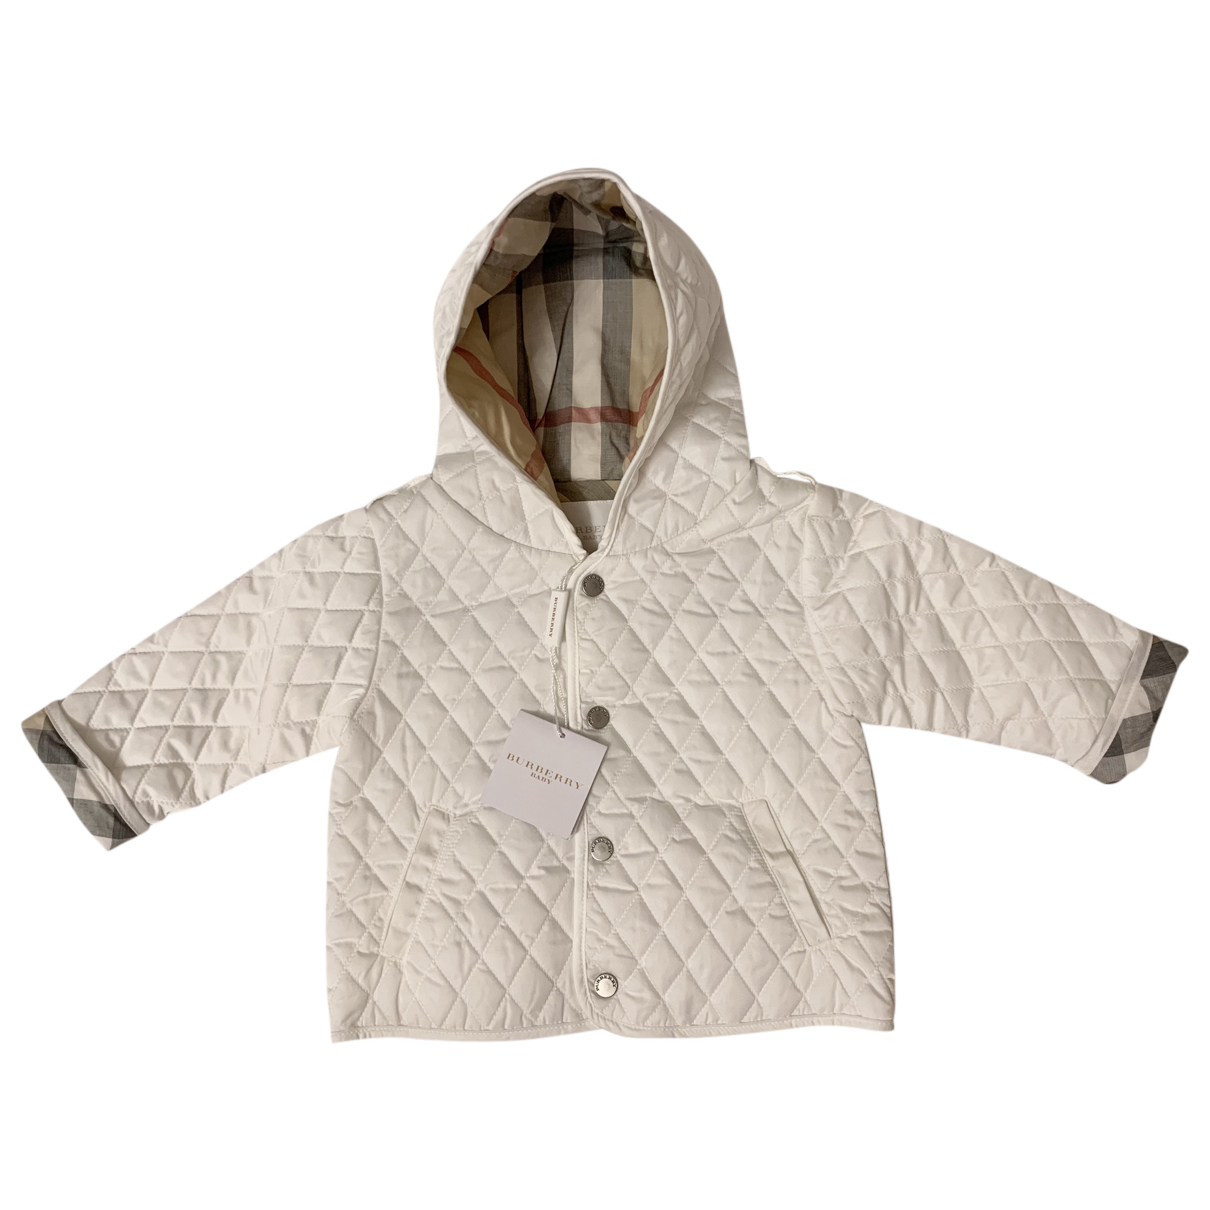 Burberry N White Cotton jacket & coat for Kids 6 months - until 26.5 inches UK